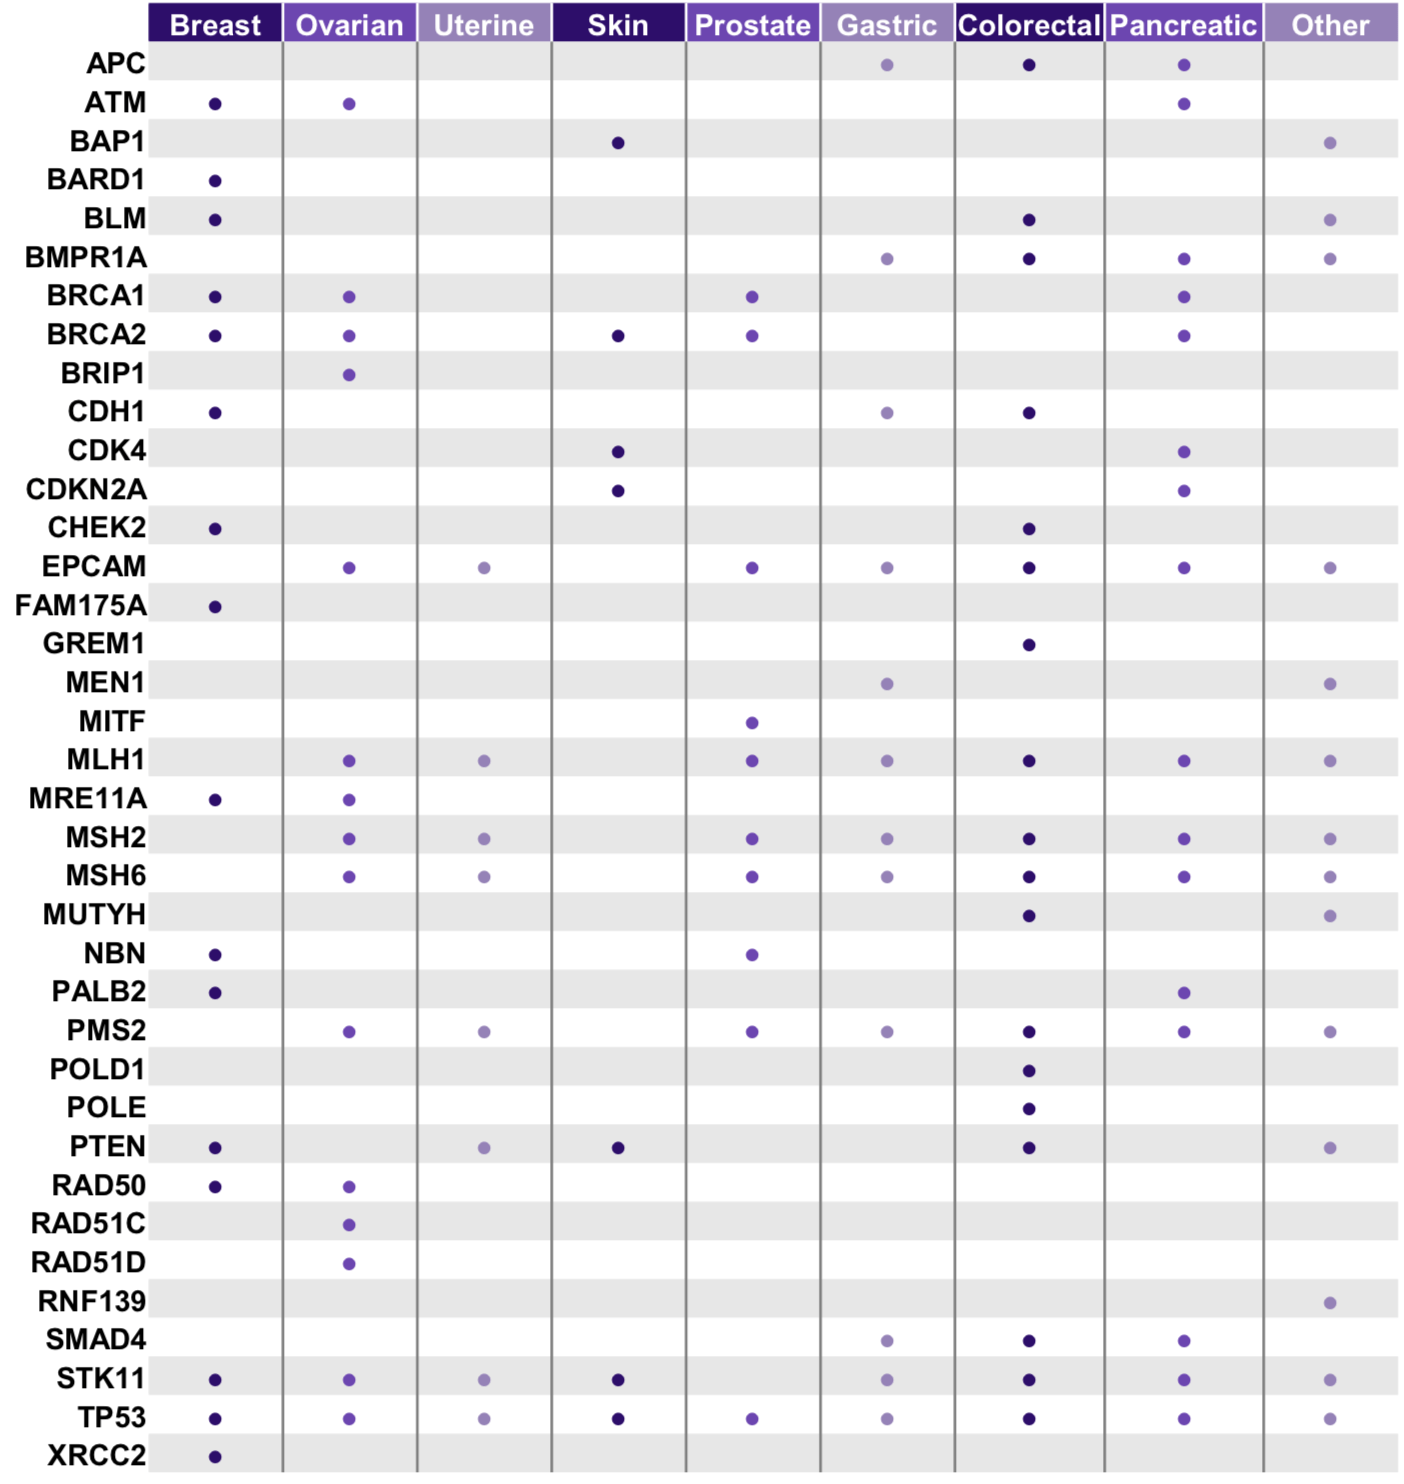 CleanPlex Hereditary Cancer NGS Amplicon Panel Gene List